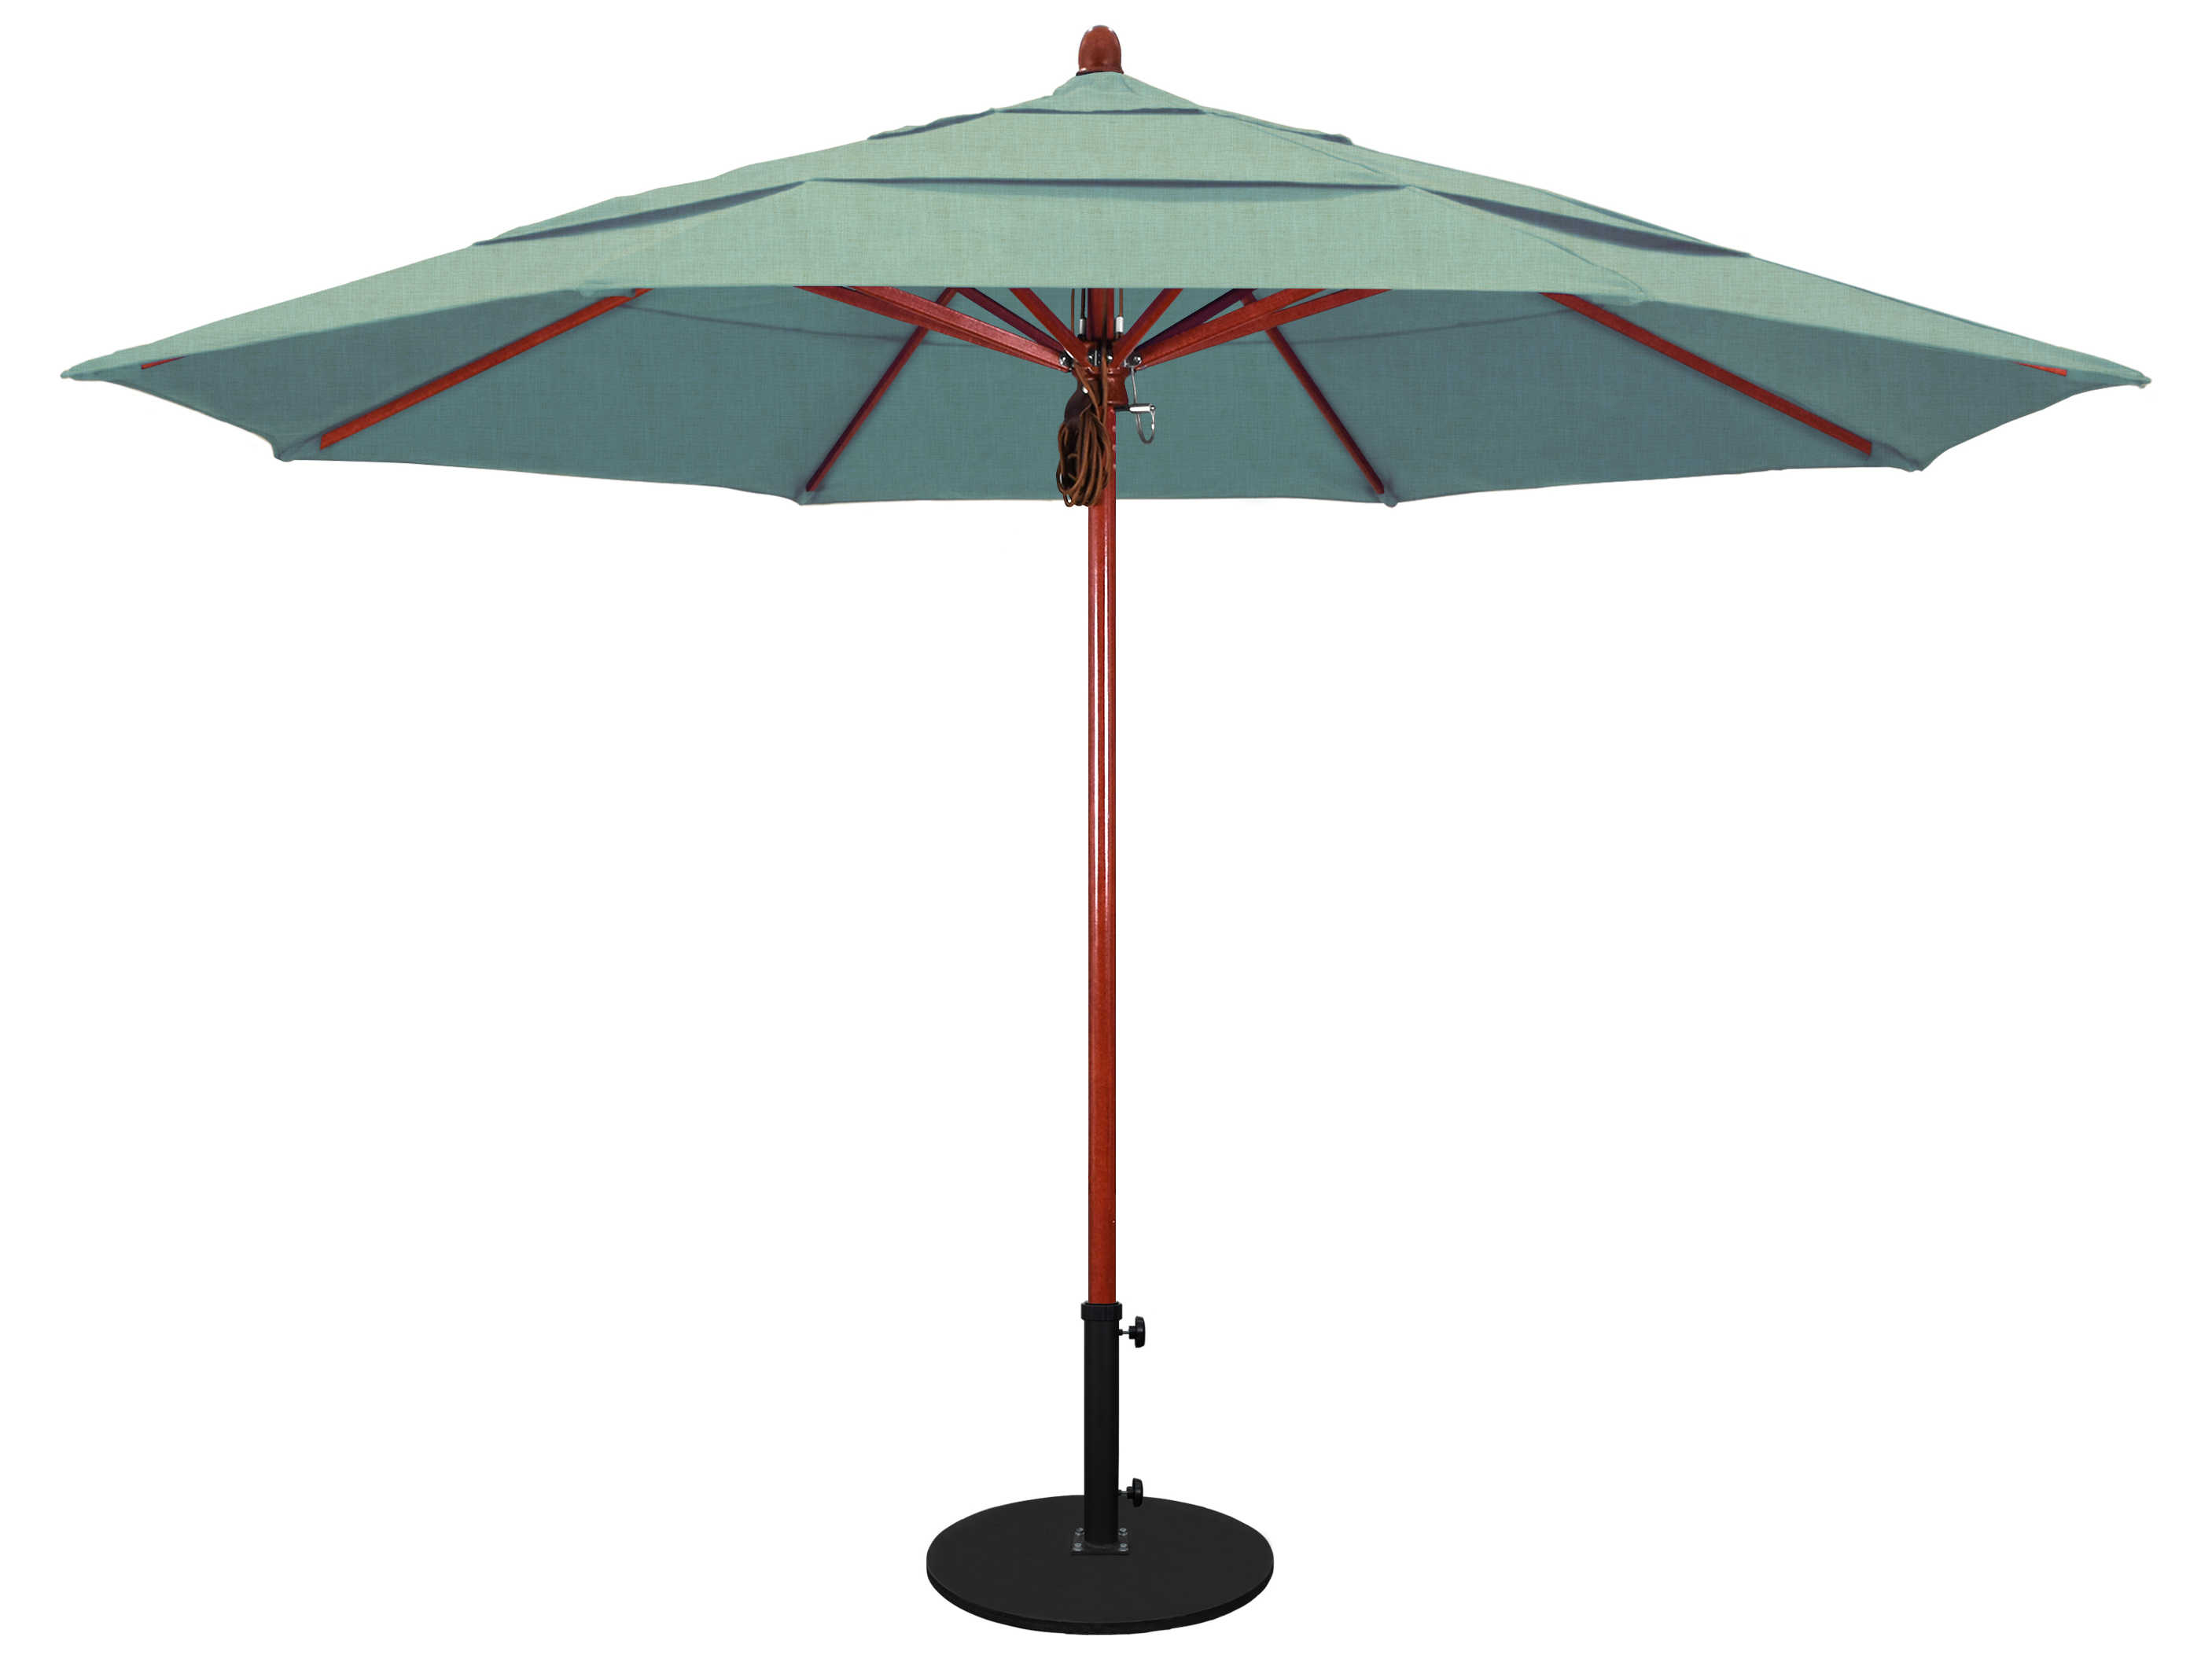 California Umbrella Sierra Series 11 Foot Octagon Market